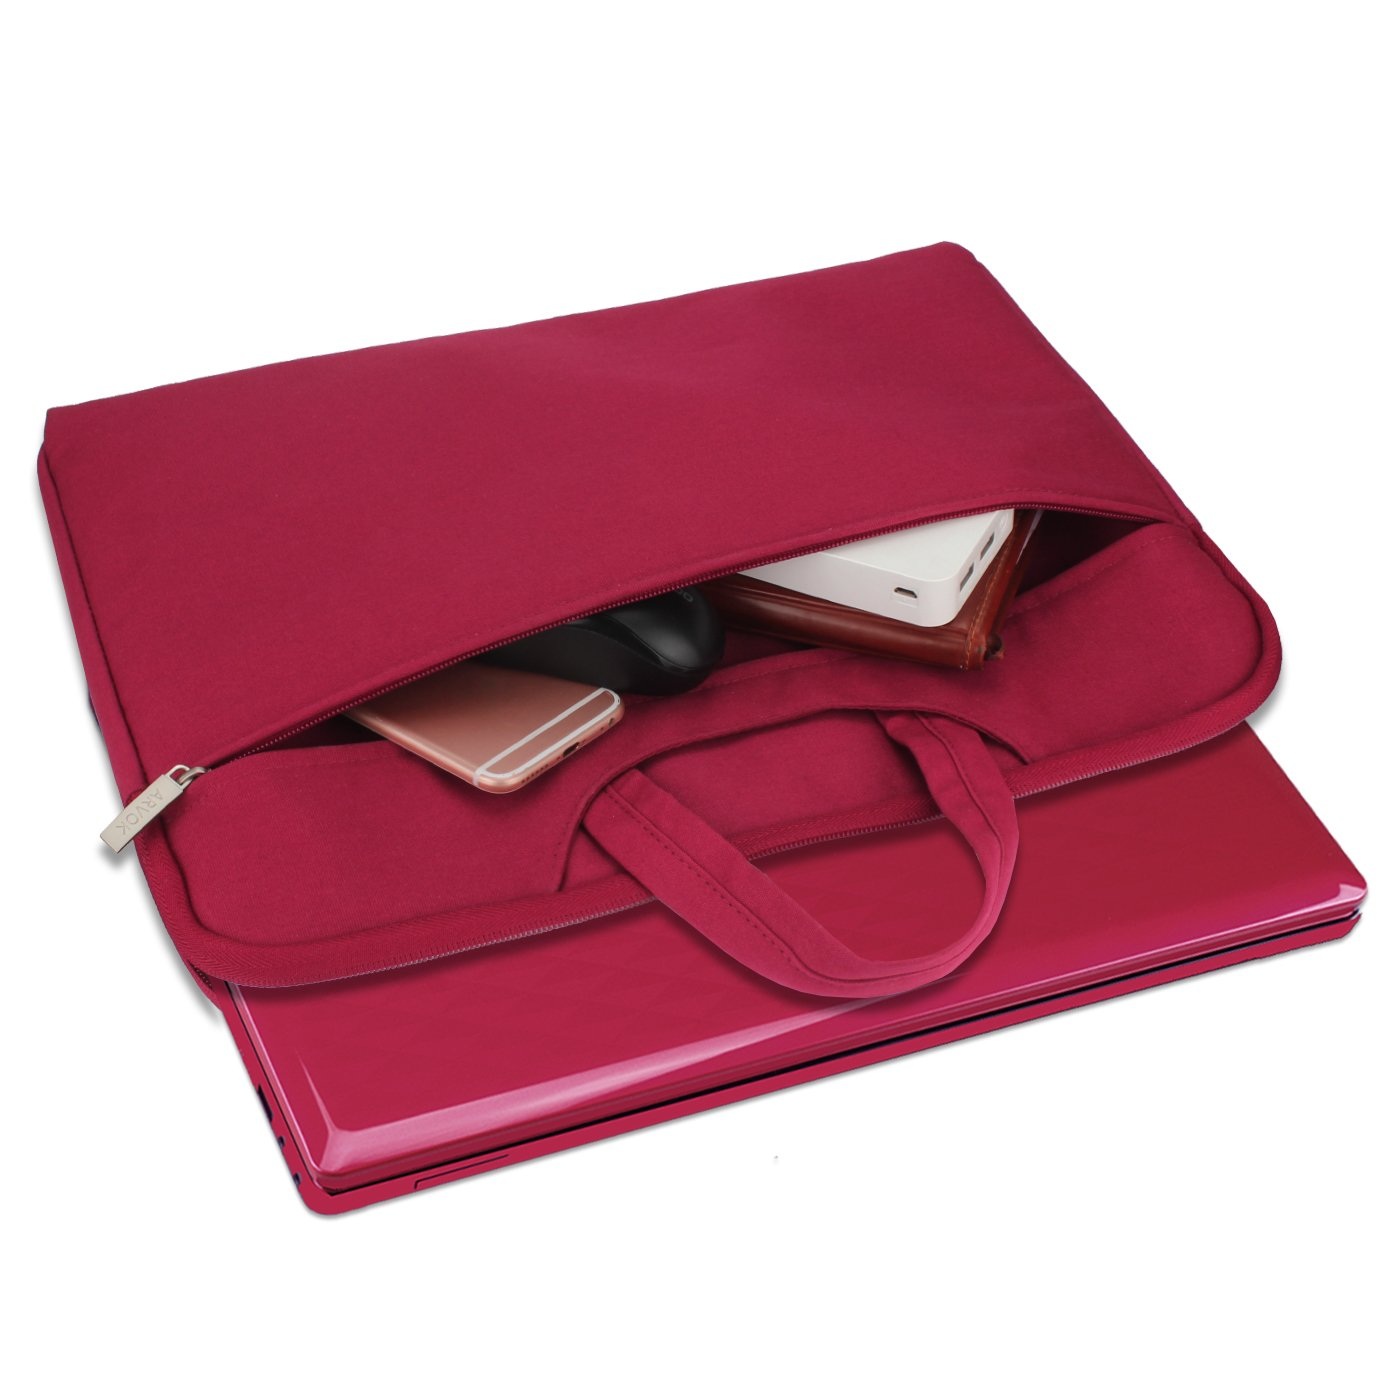 Arvok 15 15.6 16 Inch Water-resistant Canvas Fabric Laptop Sleeve With Handle&Zipper Pocket/Notebook Computer Case/Ultrabook Briefcase Carrying Bag/Pouch Cover For Acer/Asus/Dell/Lenovo/HP,Wine Red by ARVOK (Image #4)